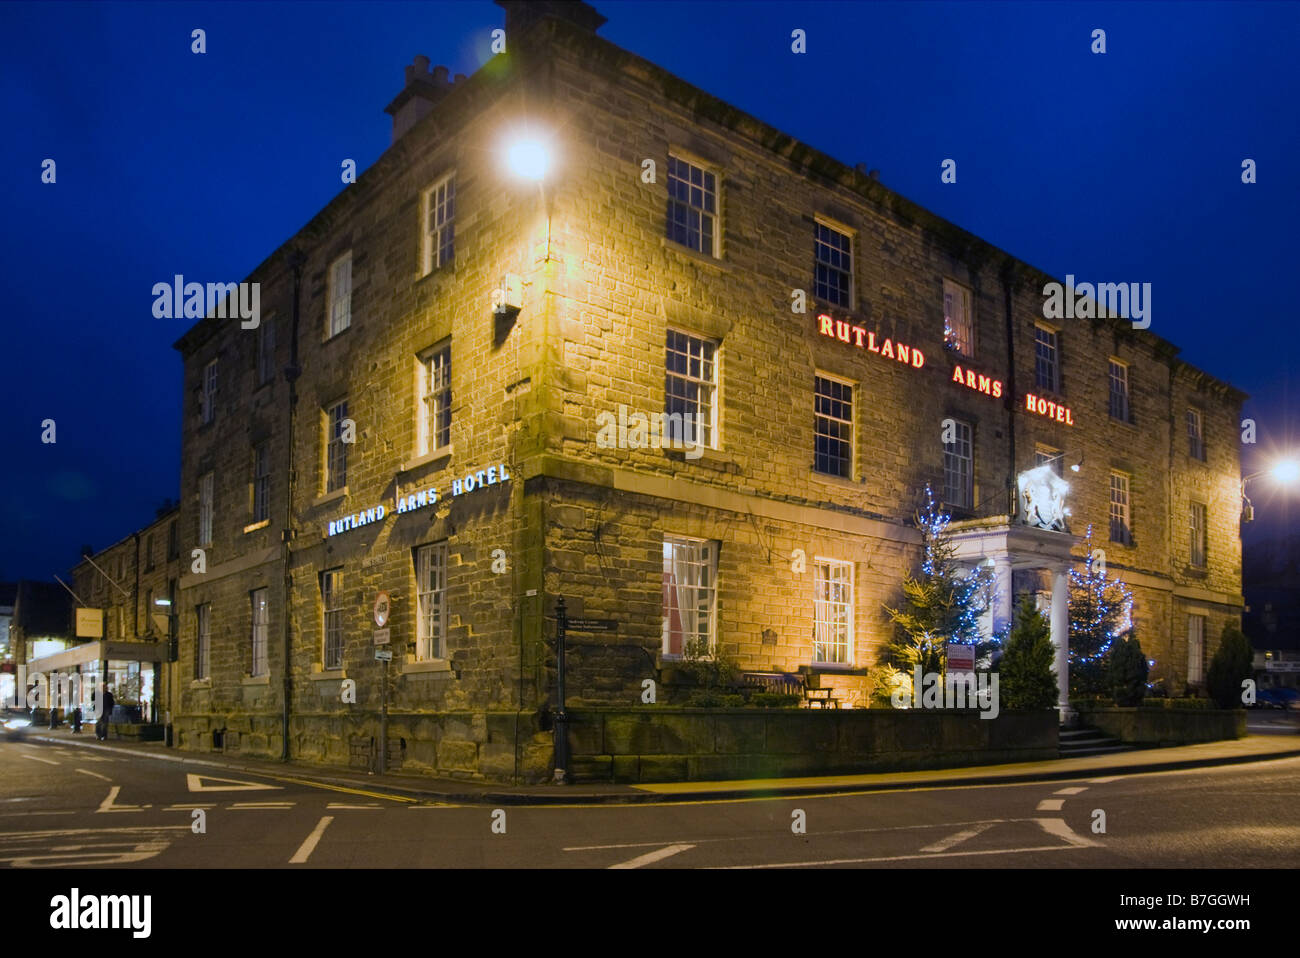 Rutland Arms Hotel in Bakewell at night Derbyshire Peak District National Park England - Stock Image